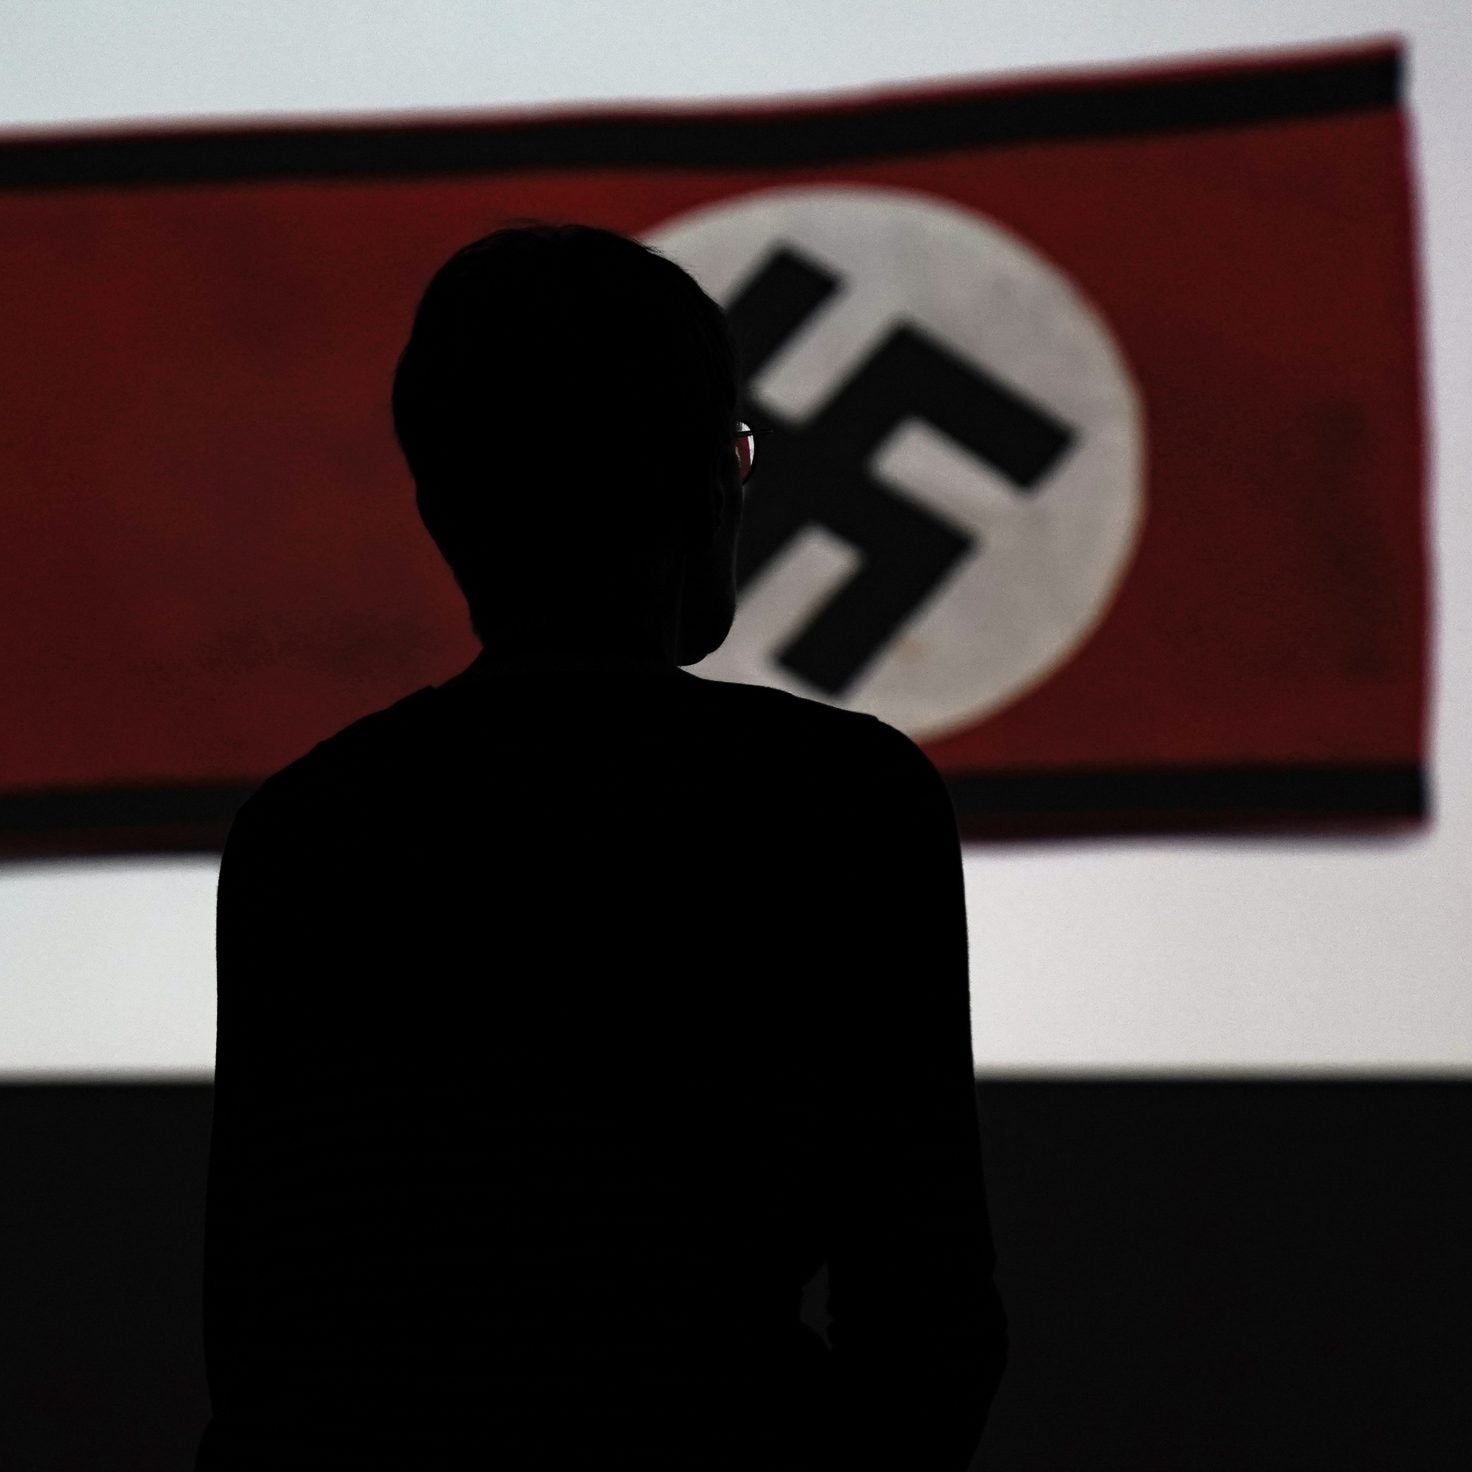 Nazi Flag Seen In California Corrections Department Window Prompts Investigation